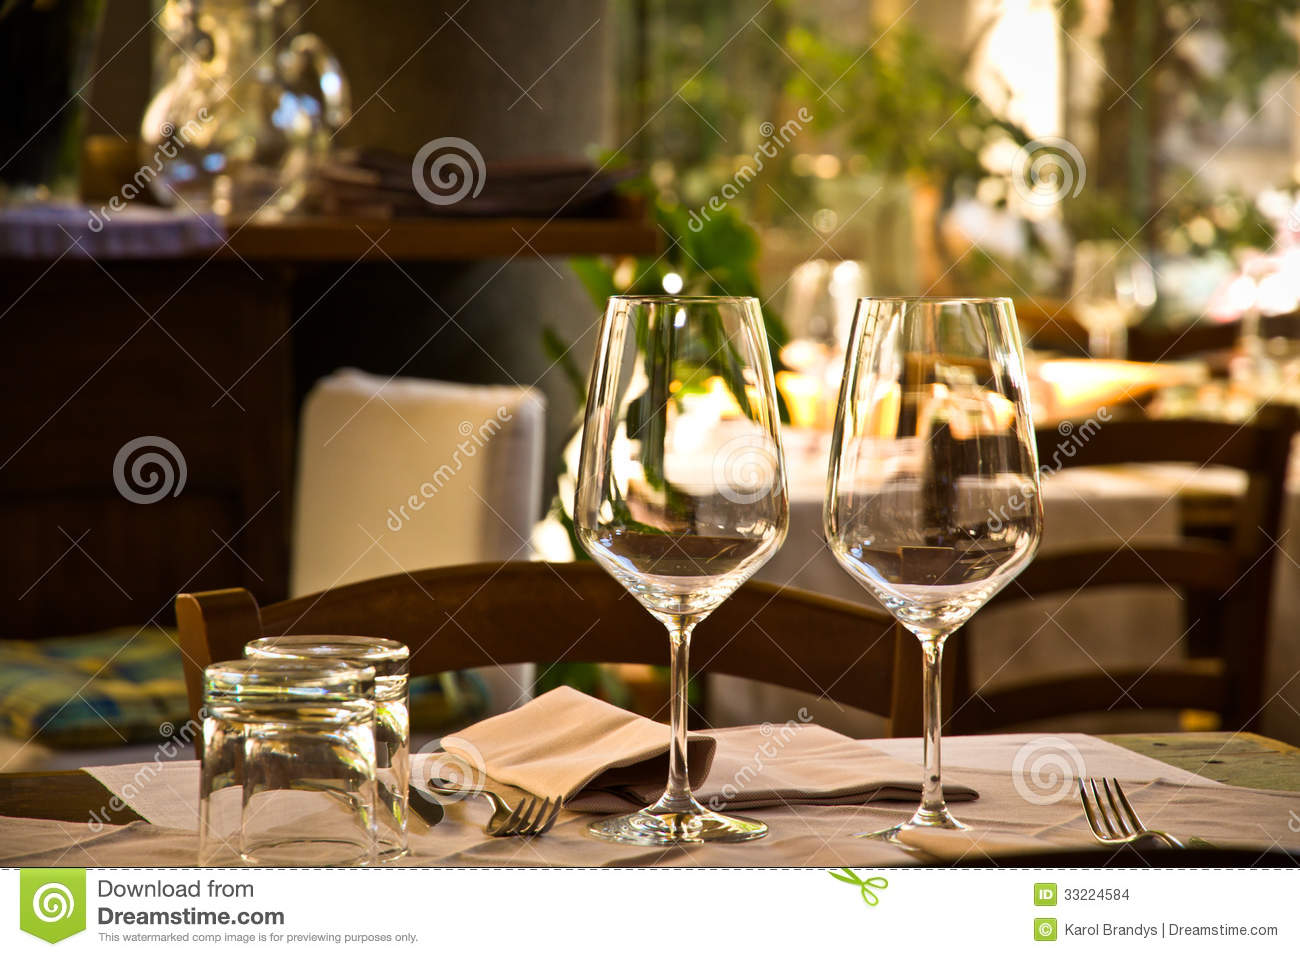 Wine glasses and table setting in restaurant stock photo for Table for two